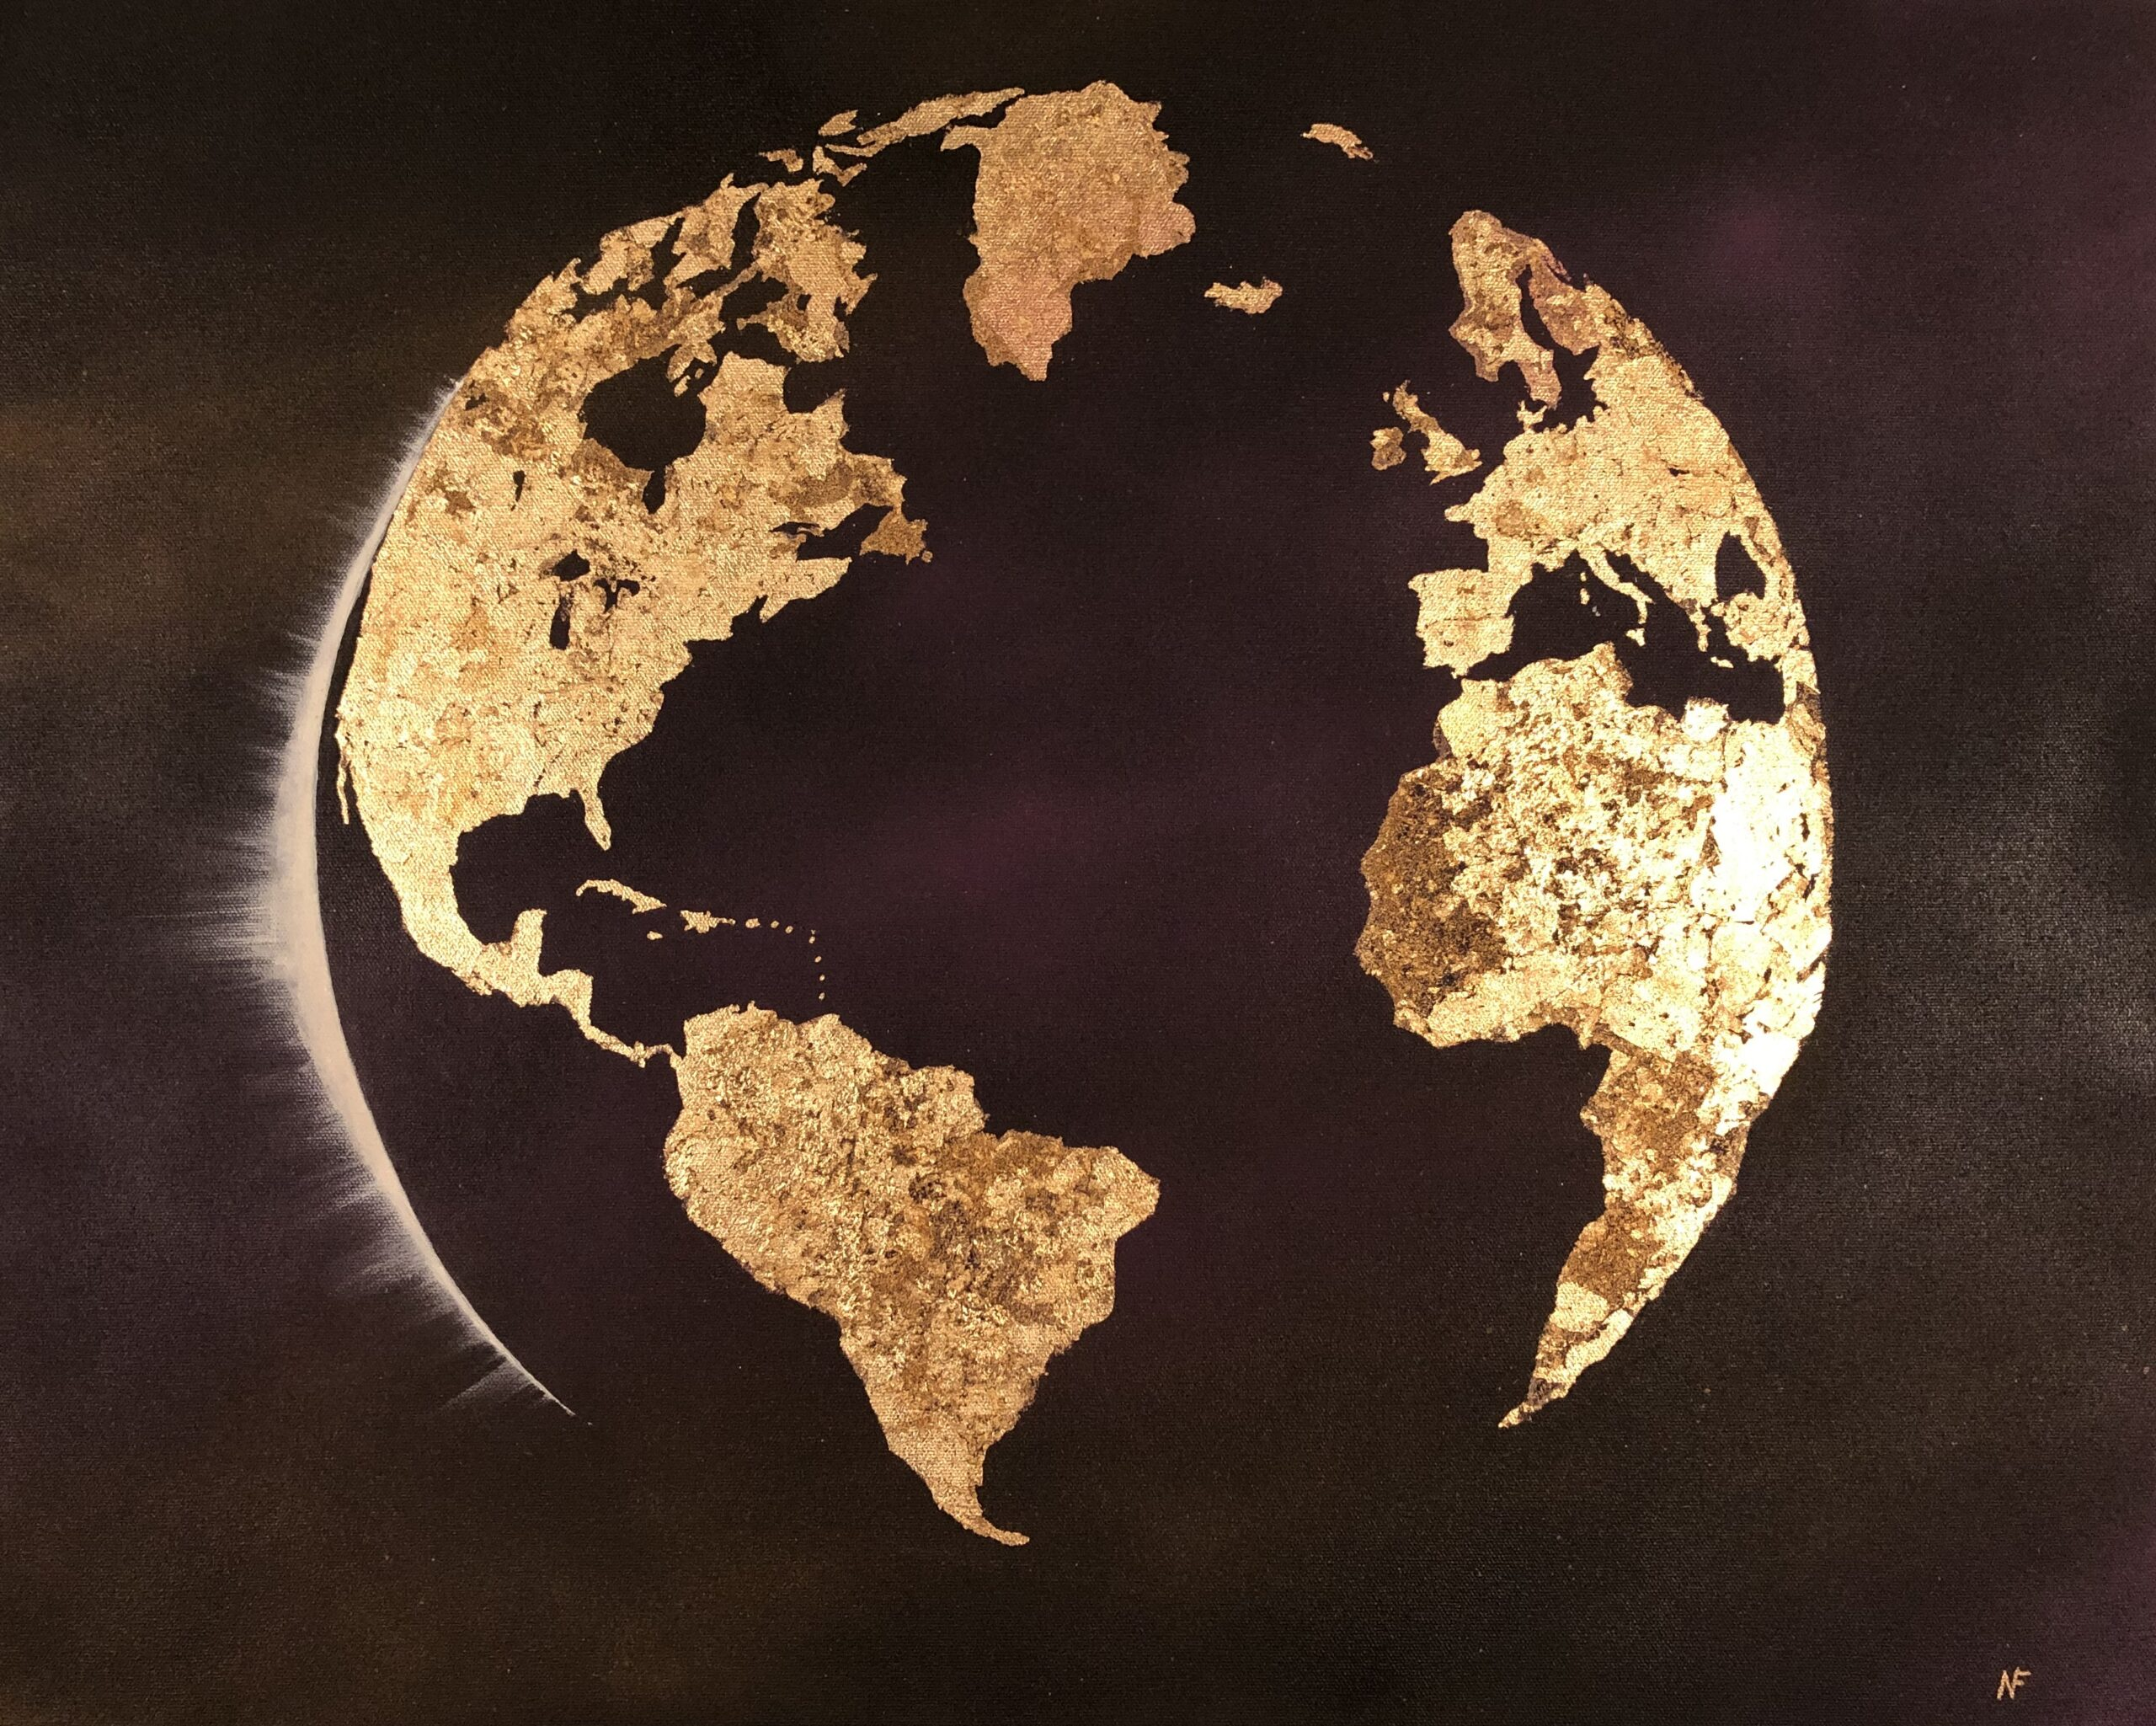 The Earth with both the Eastern and Western Hemispheres